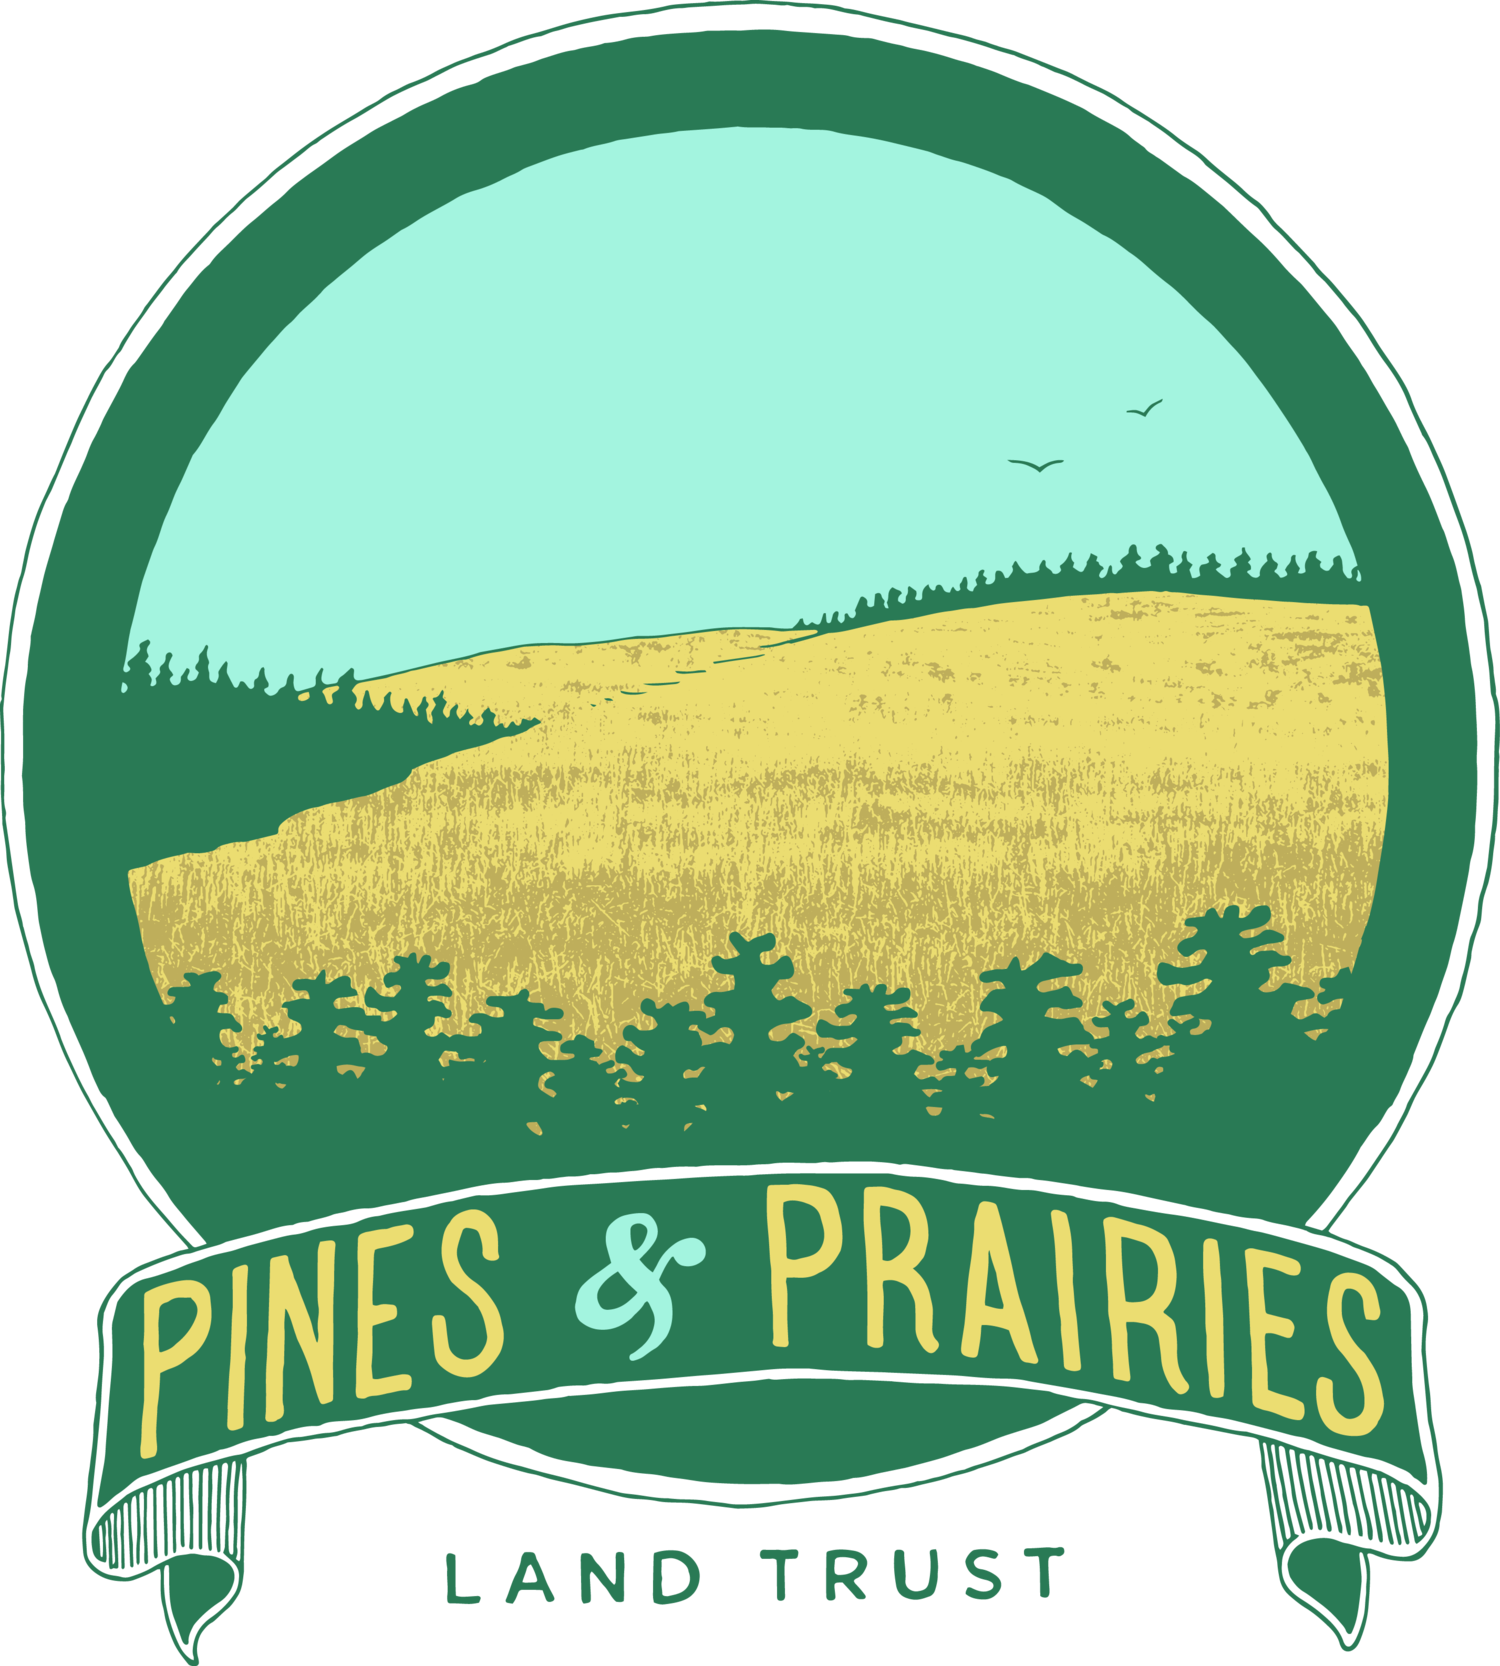 Pines & Prairies Land Trust